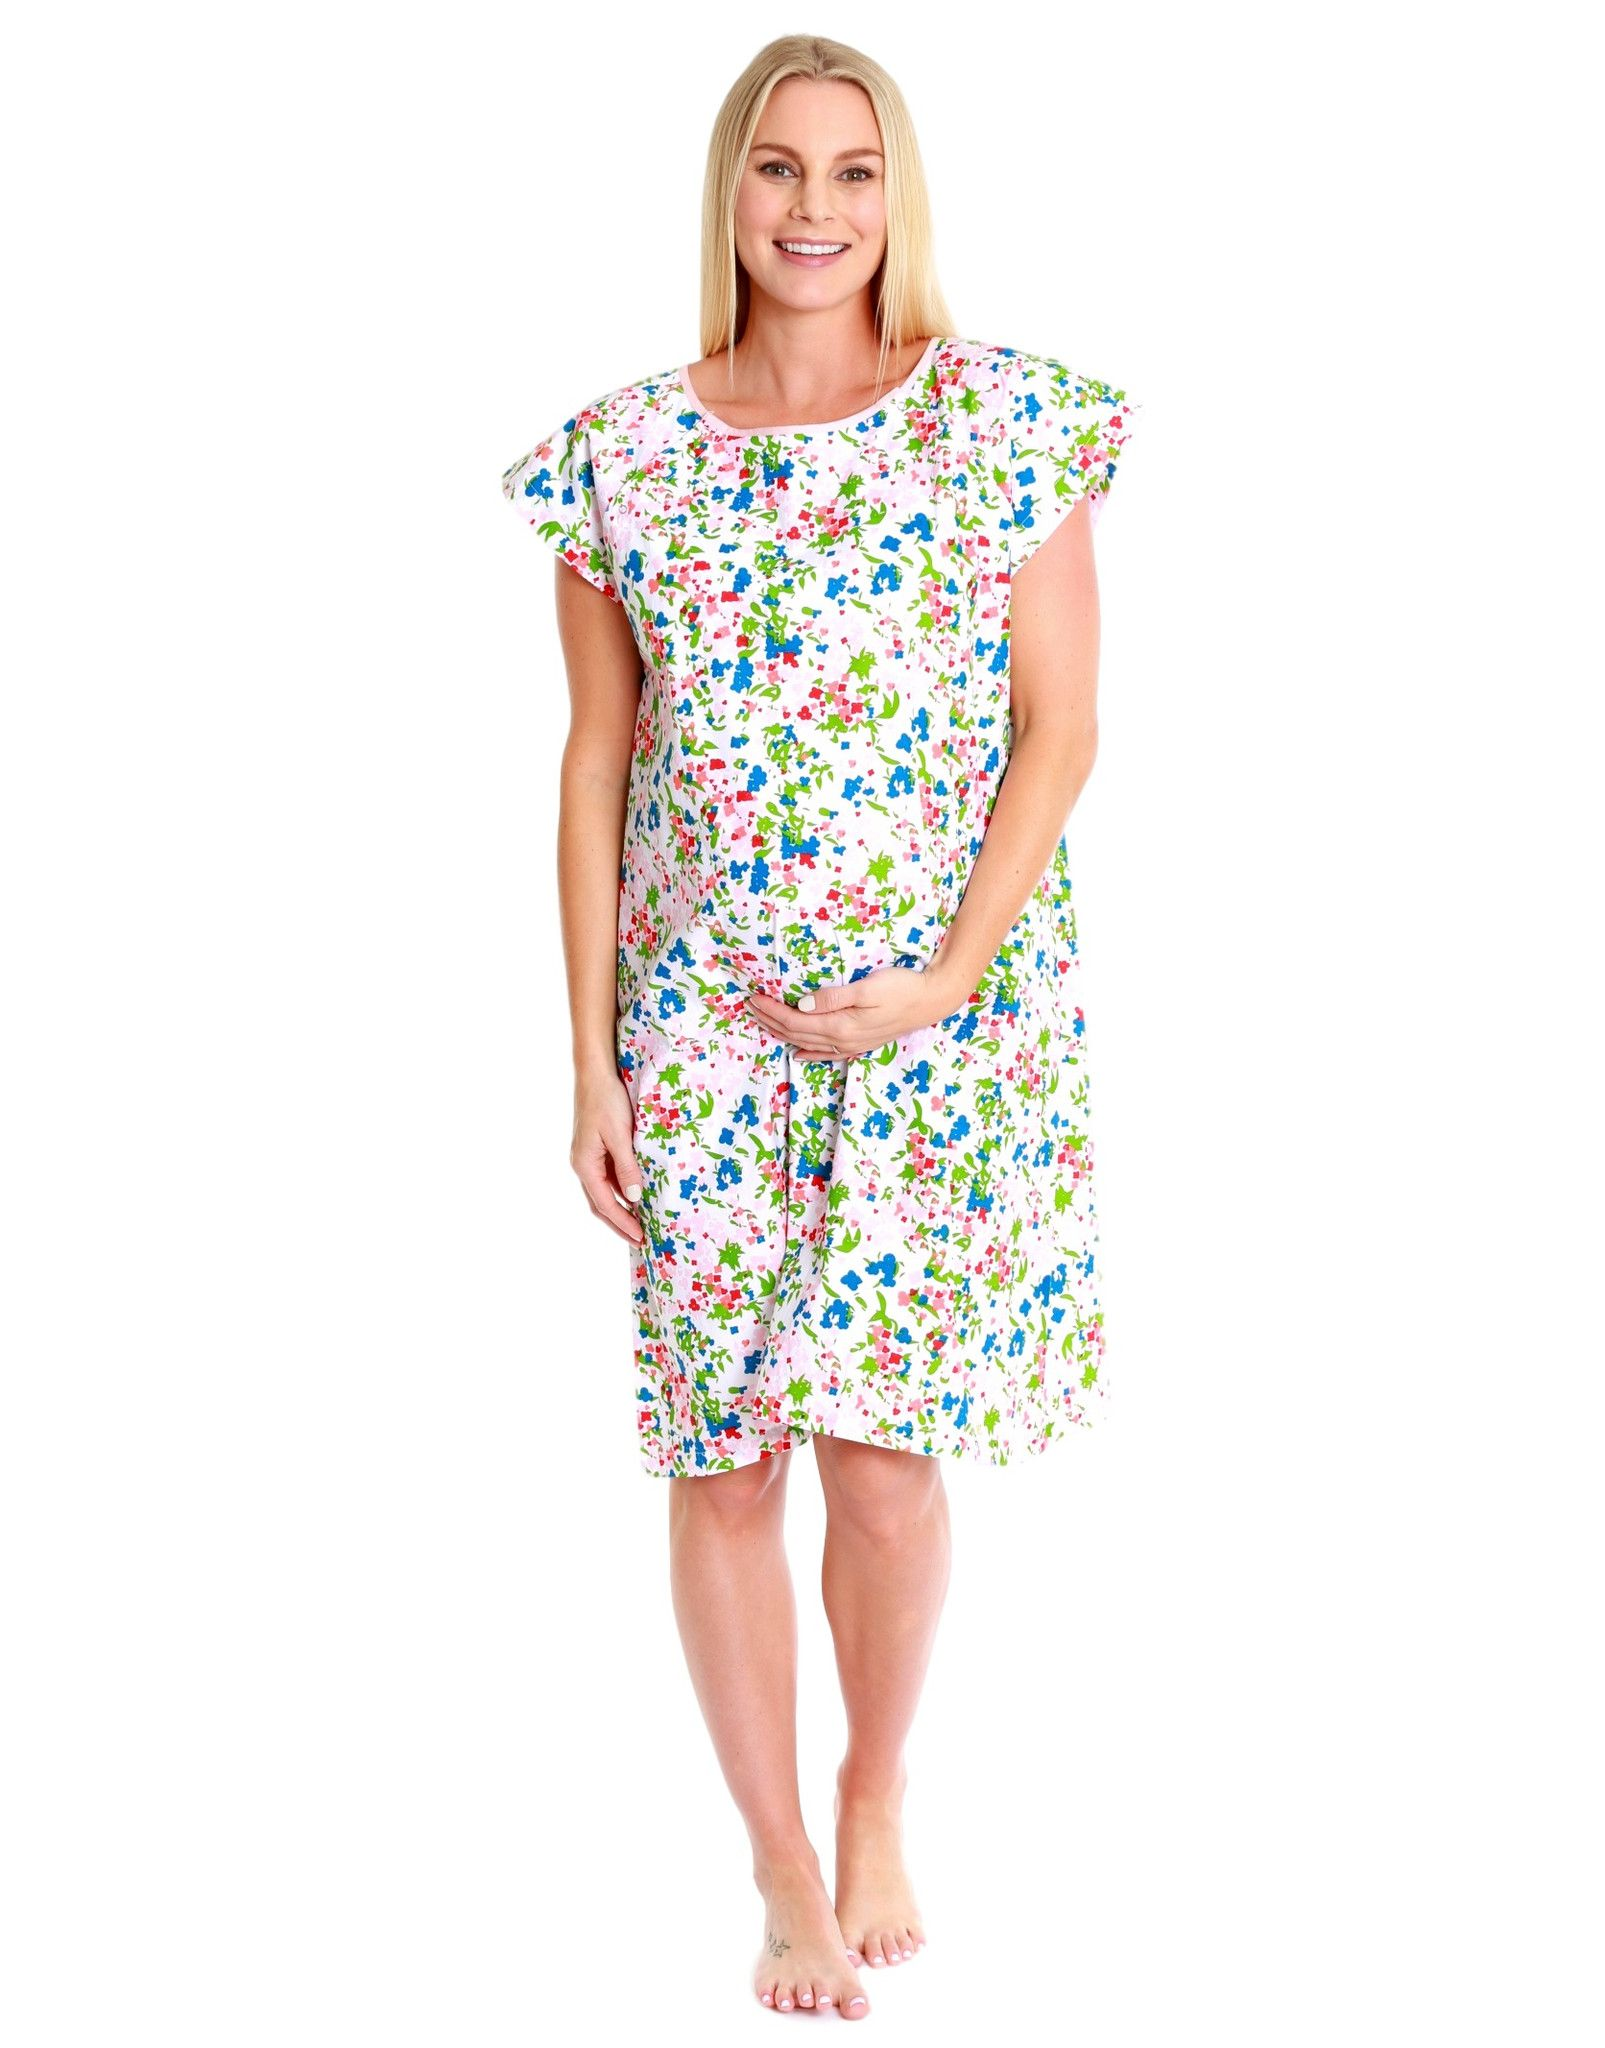 Emma Gownie Maternity Delivery Labor Hospital Birthing Gown ...